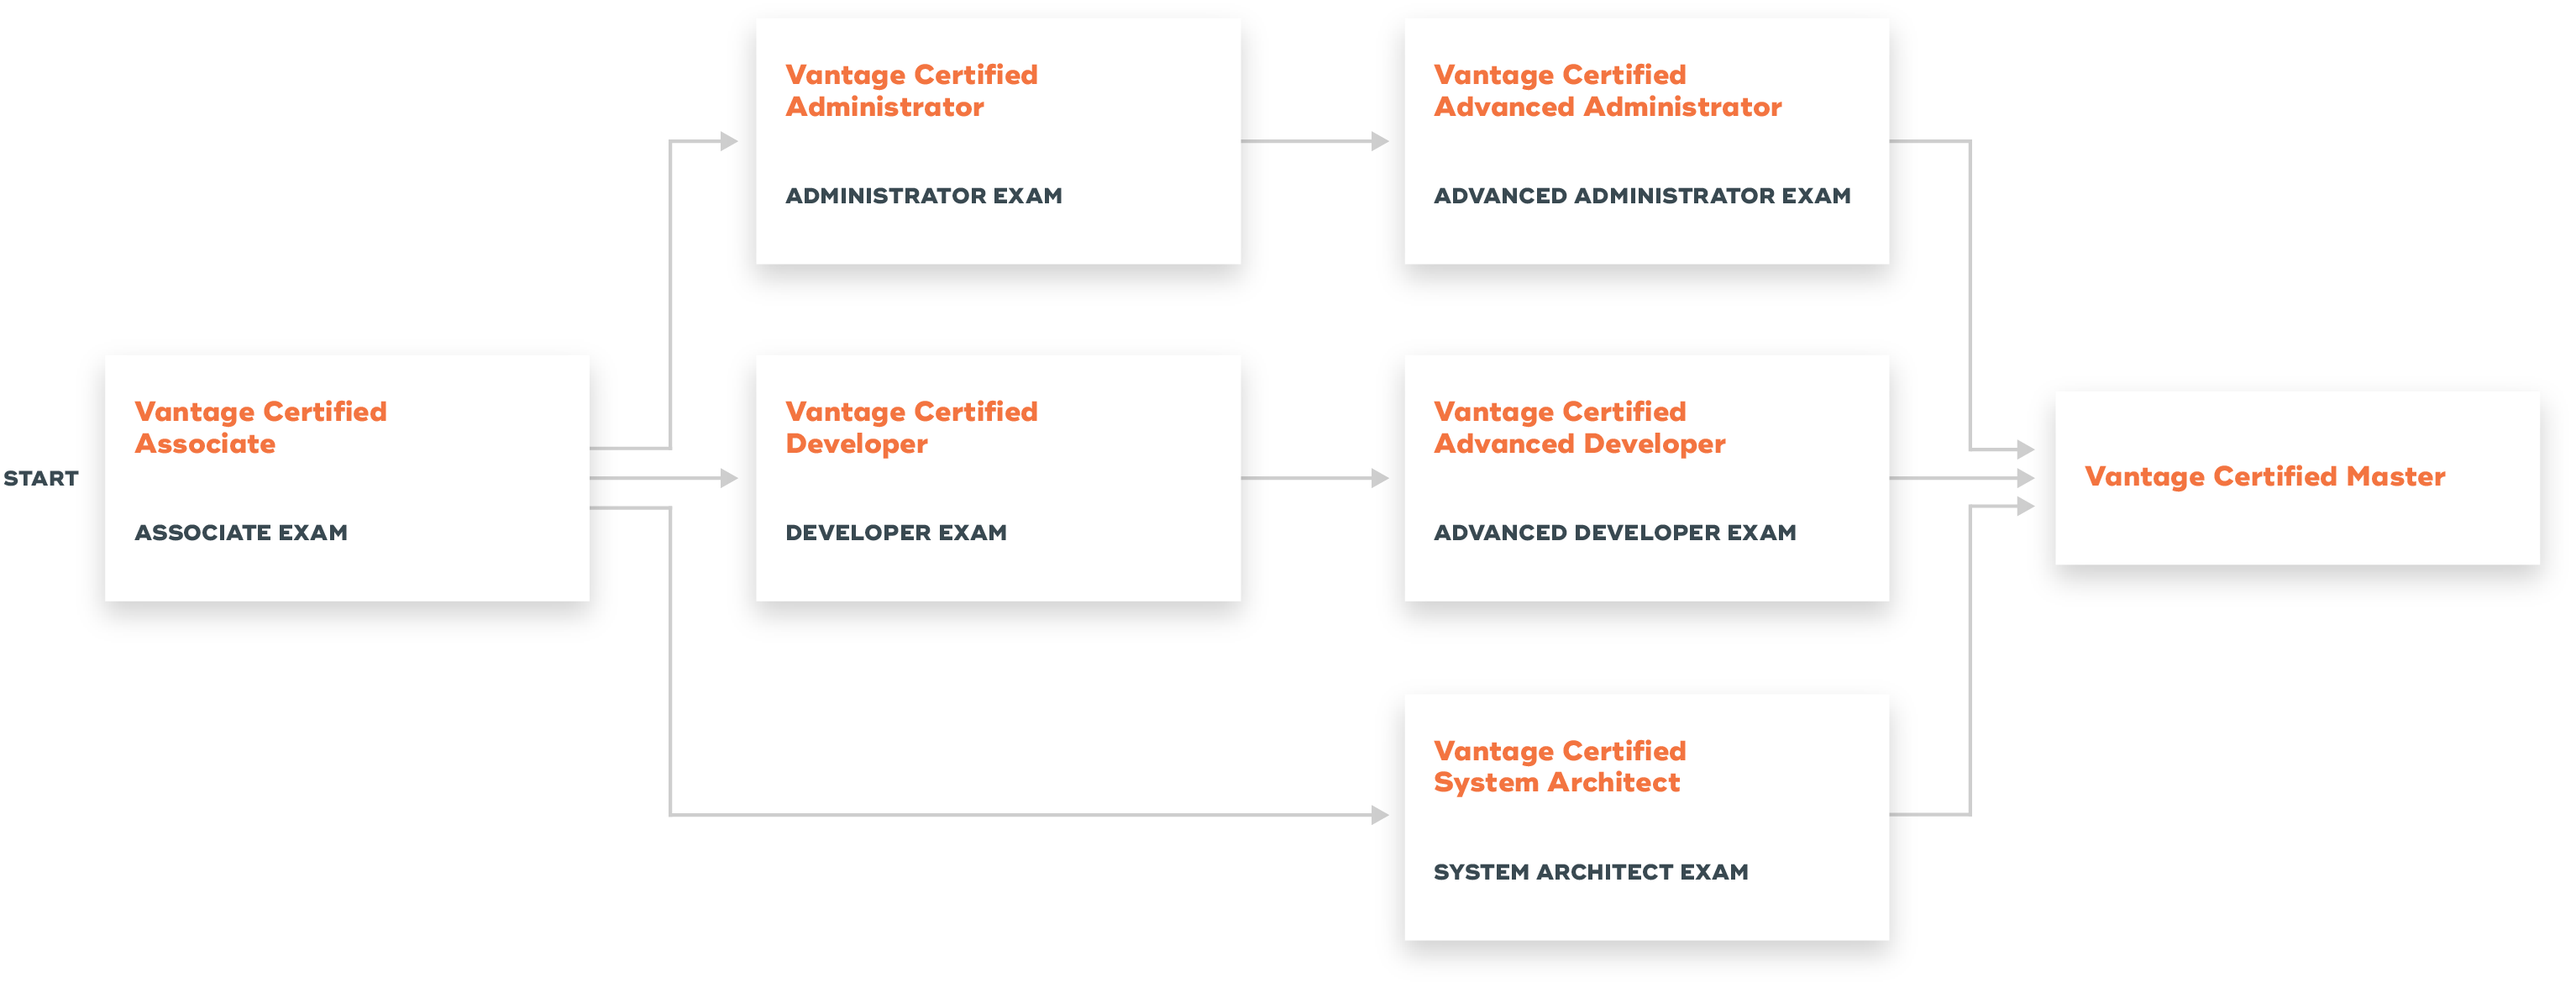 Teradata Certification Options: Option 1: Associate Exam - Administrator Exam - Advanced Administrator exam - Vantage Certified Master Option 2: Associate Exam - Developer Exam - Advanced Developer Exam - Vantage Certified Master Option 3: Associate Exam - System Architect Exam - Vantage Certified Master